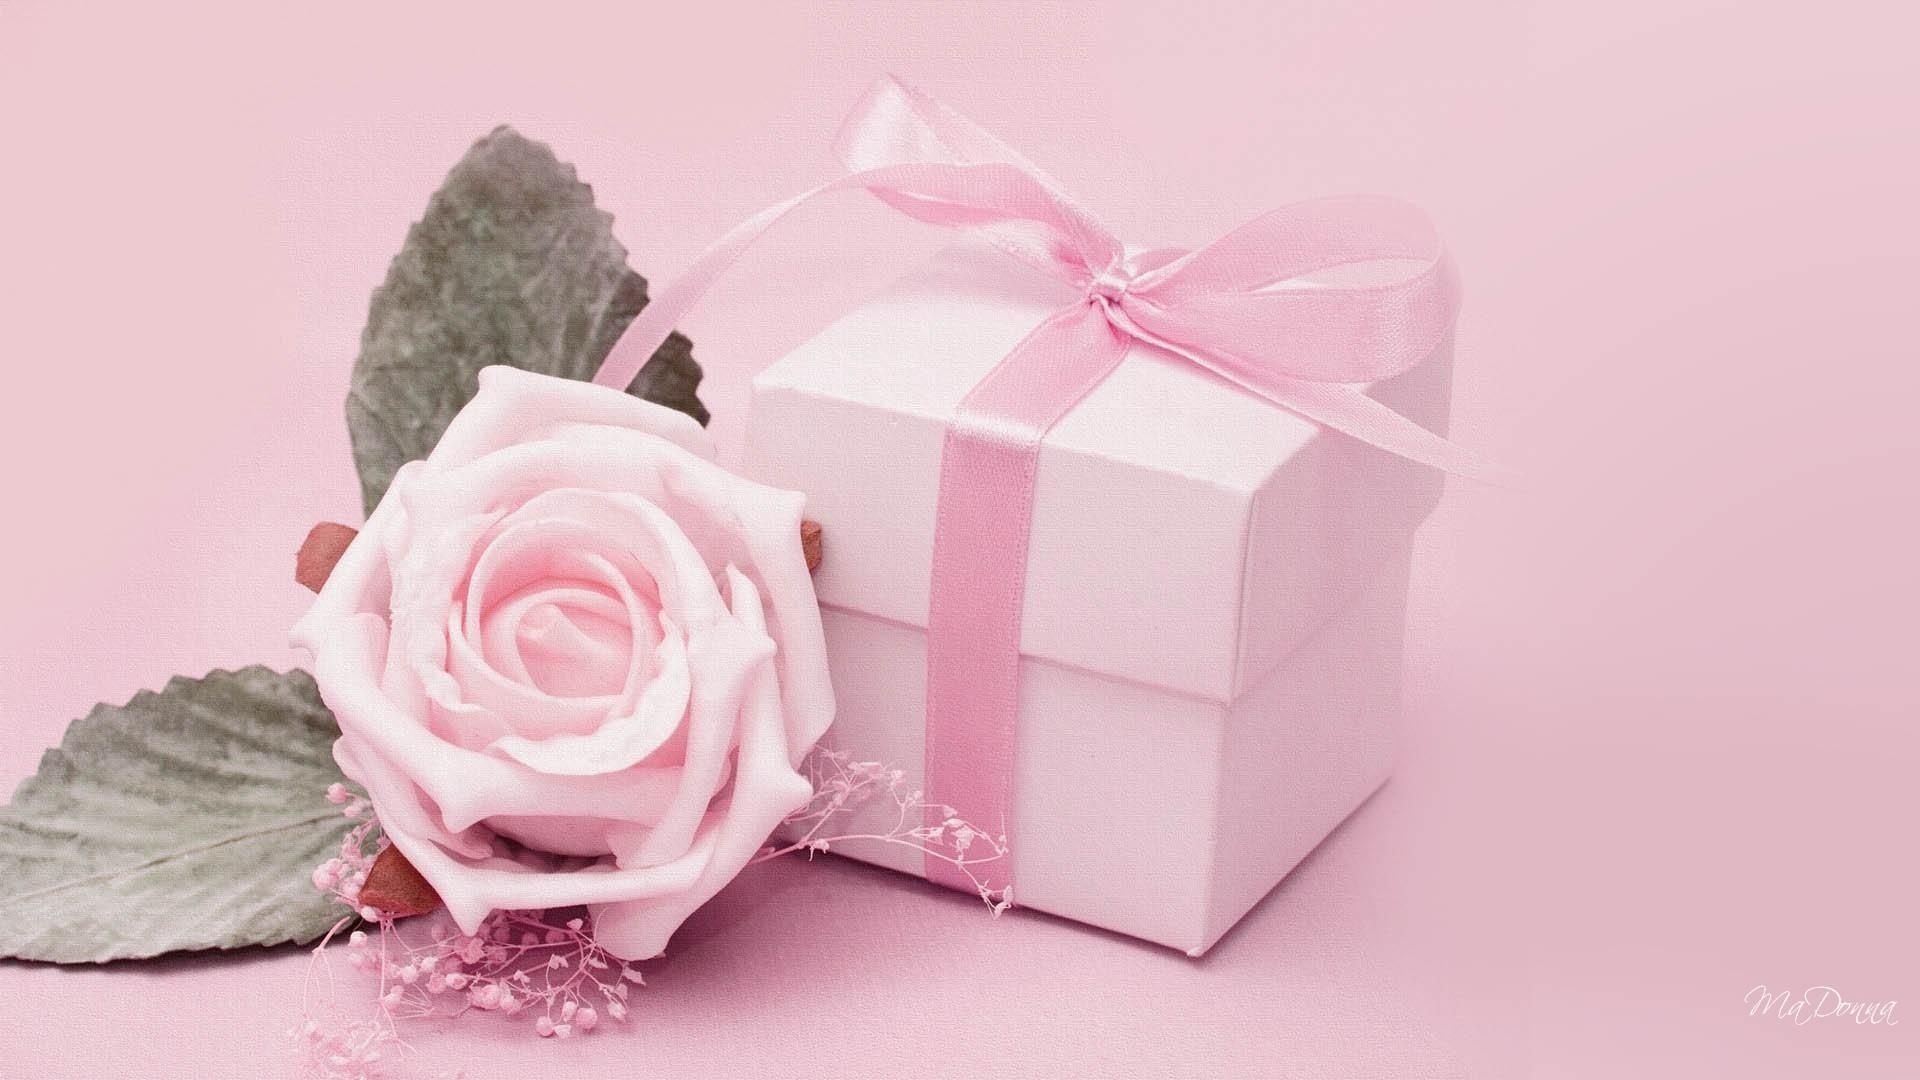 Romantic Gift For Her Pink Rose And Gift Hd Wallpaper 3437 Unique Valentines Day Gifts Flower Desktop Wallpaper Pink Flowers Background